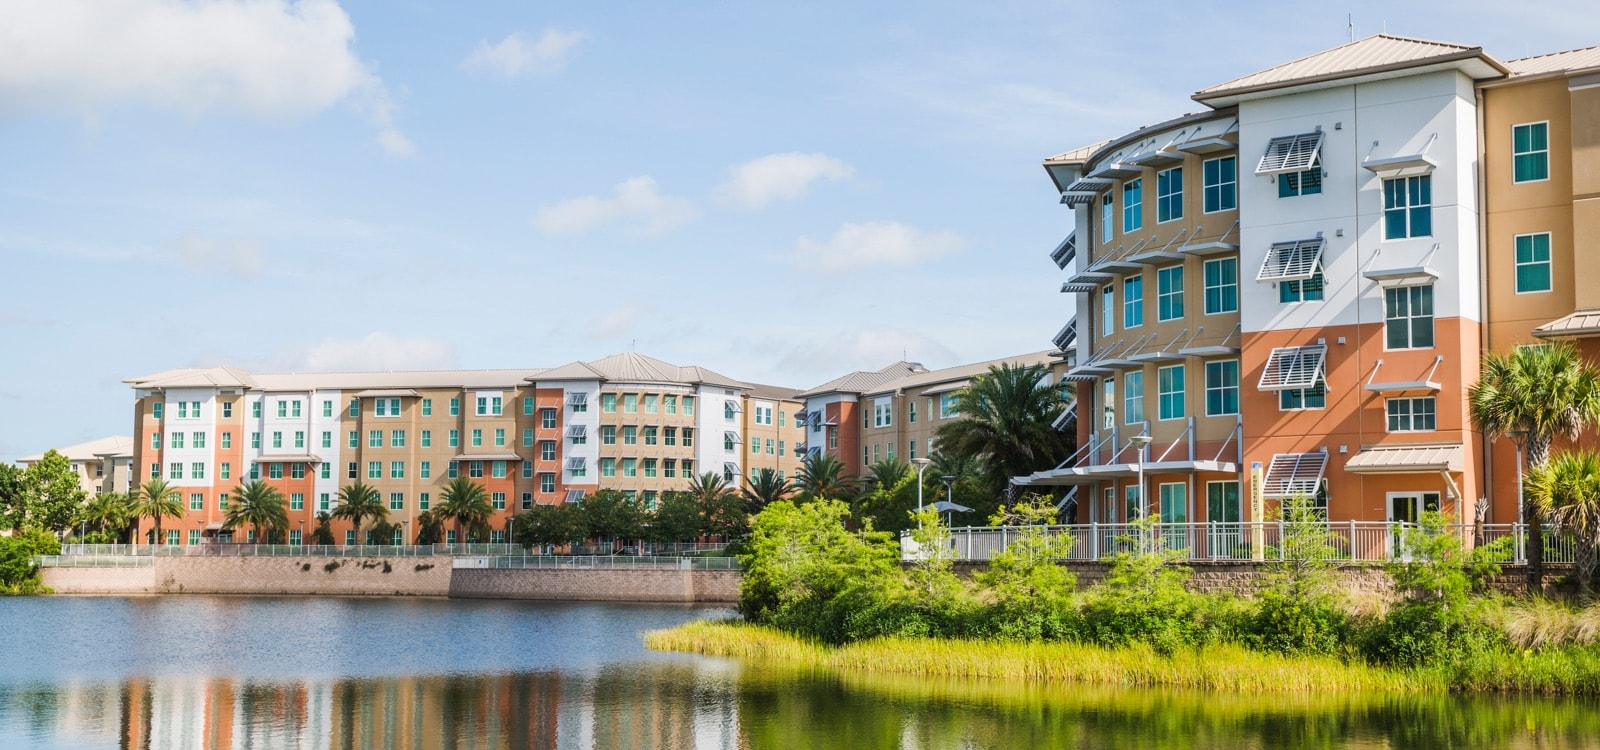 image of ucf housing towers at knights plaza, view from over a lake